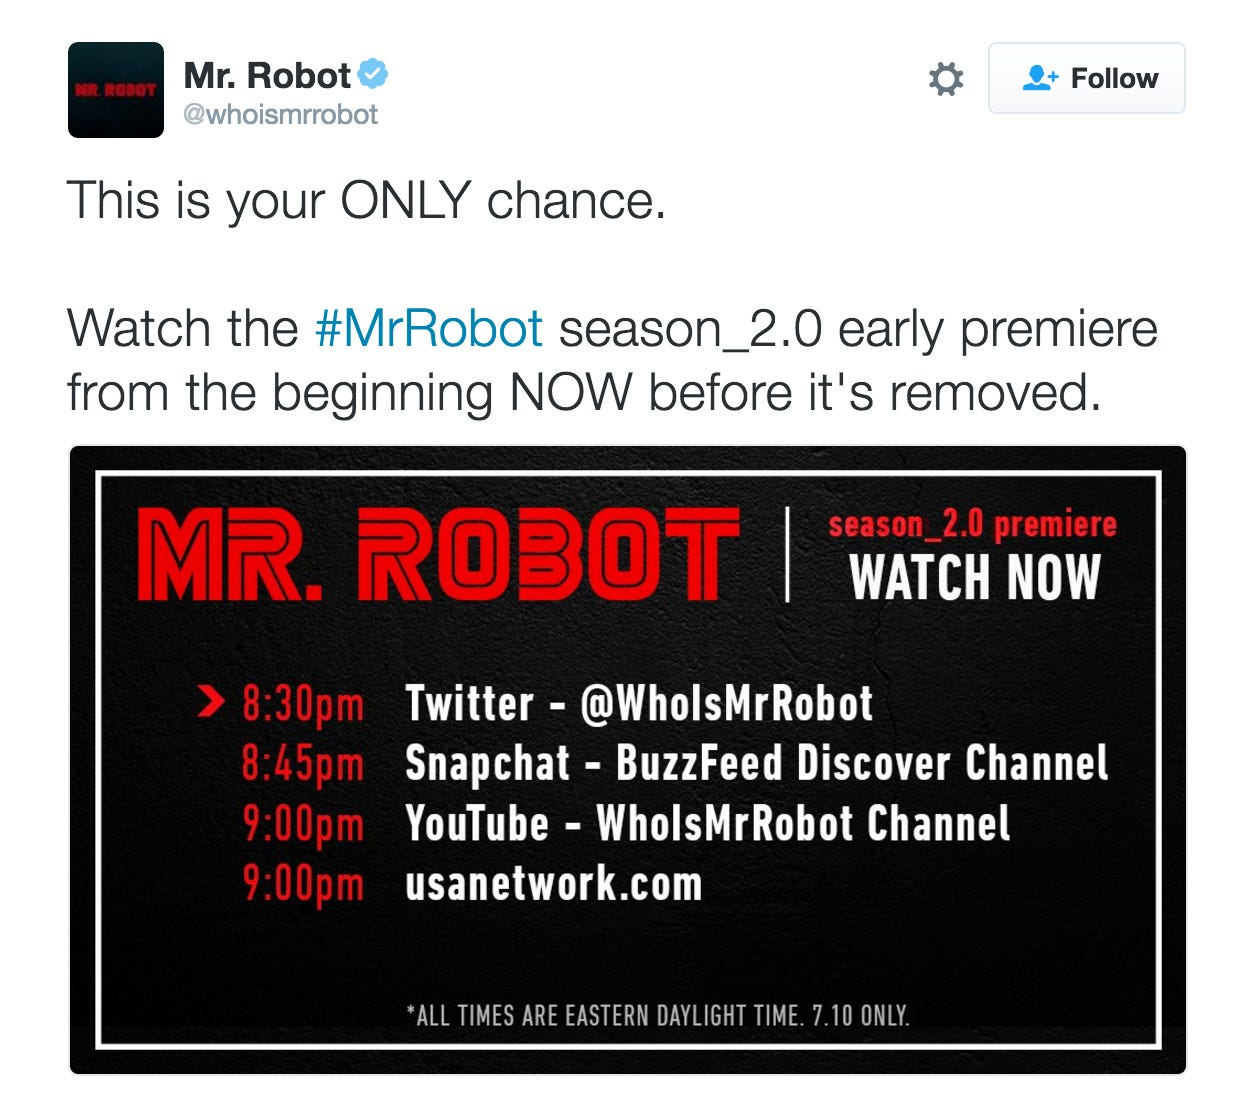 mr robot just released their season 2 premiere on twitter